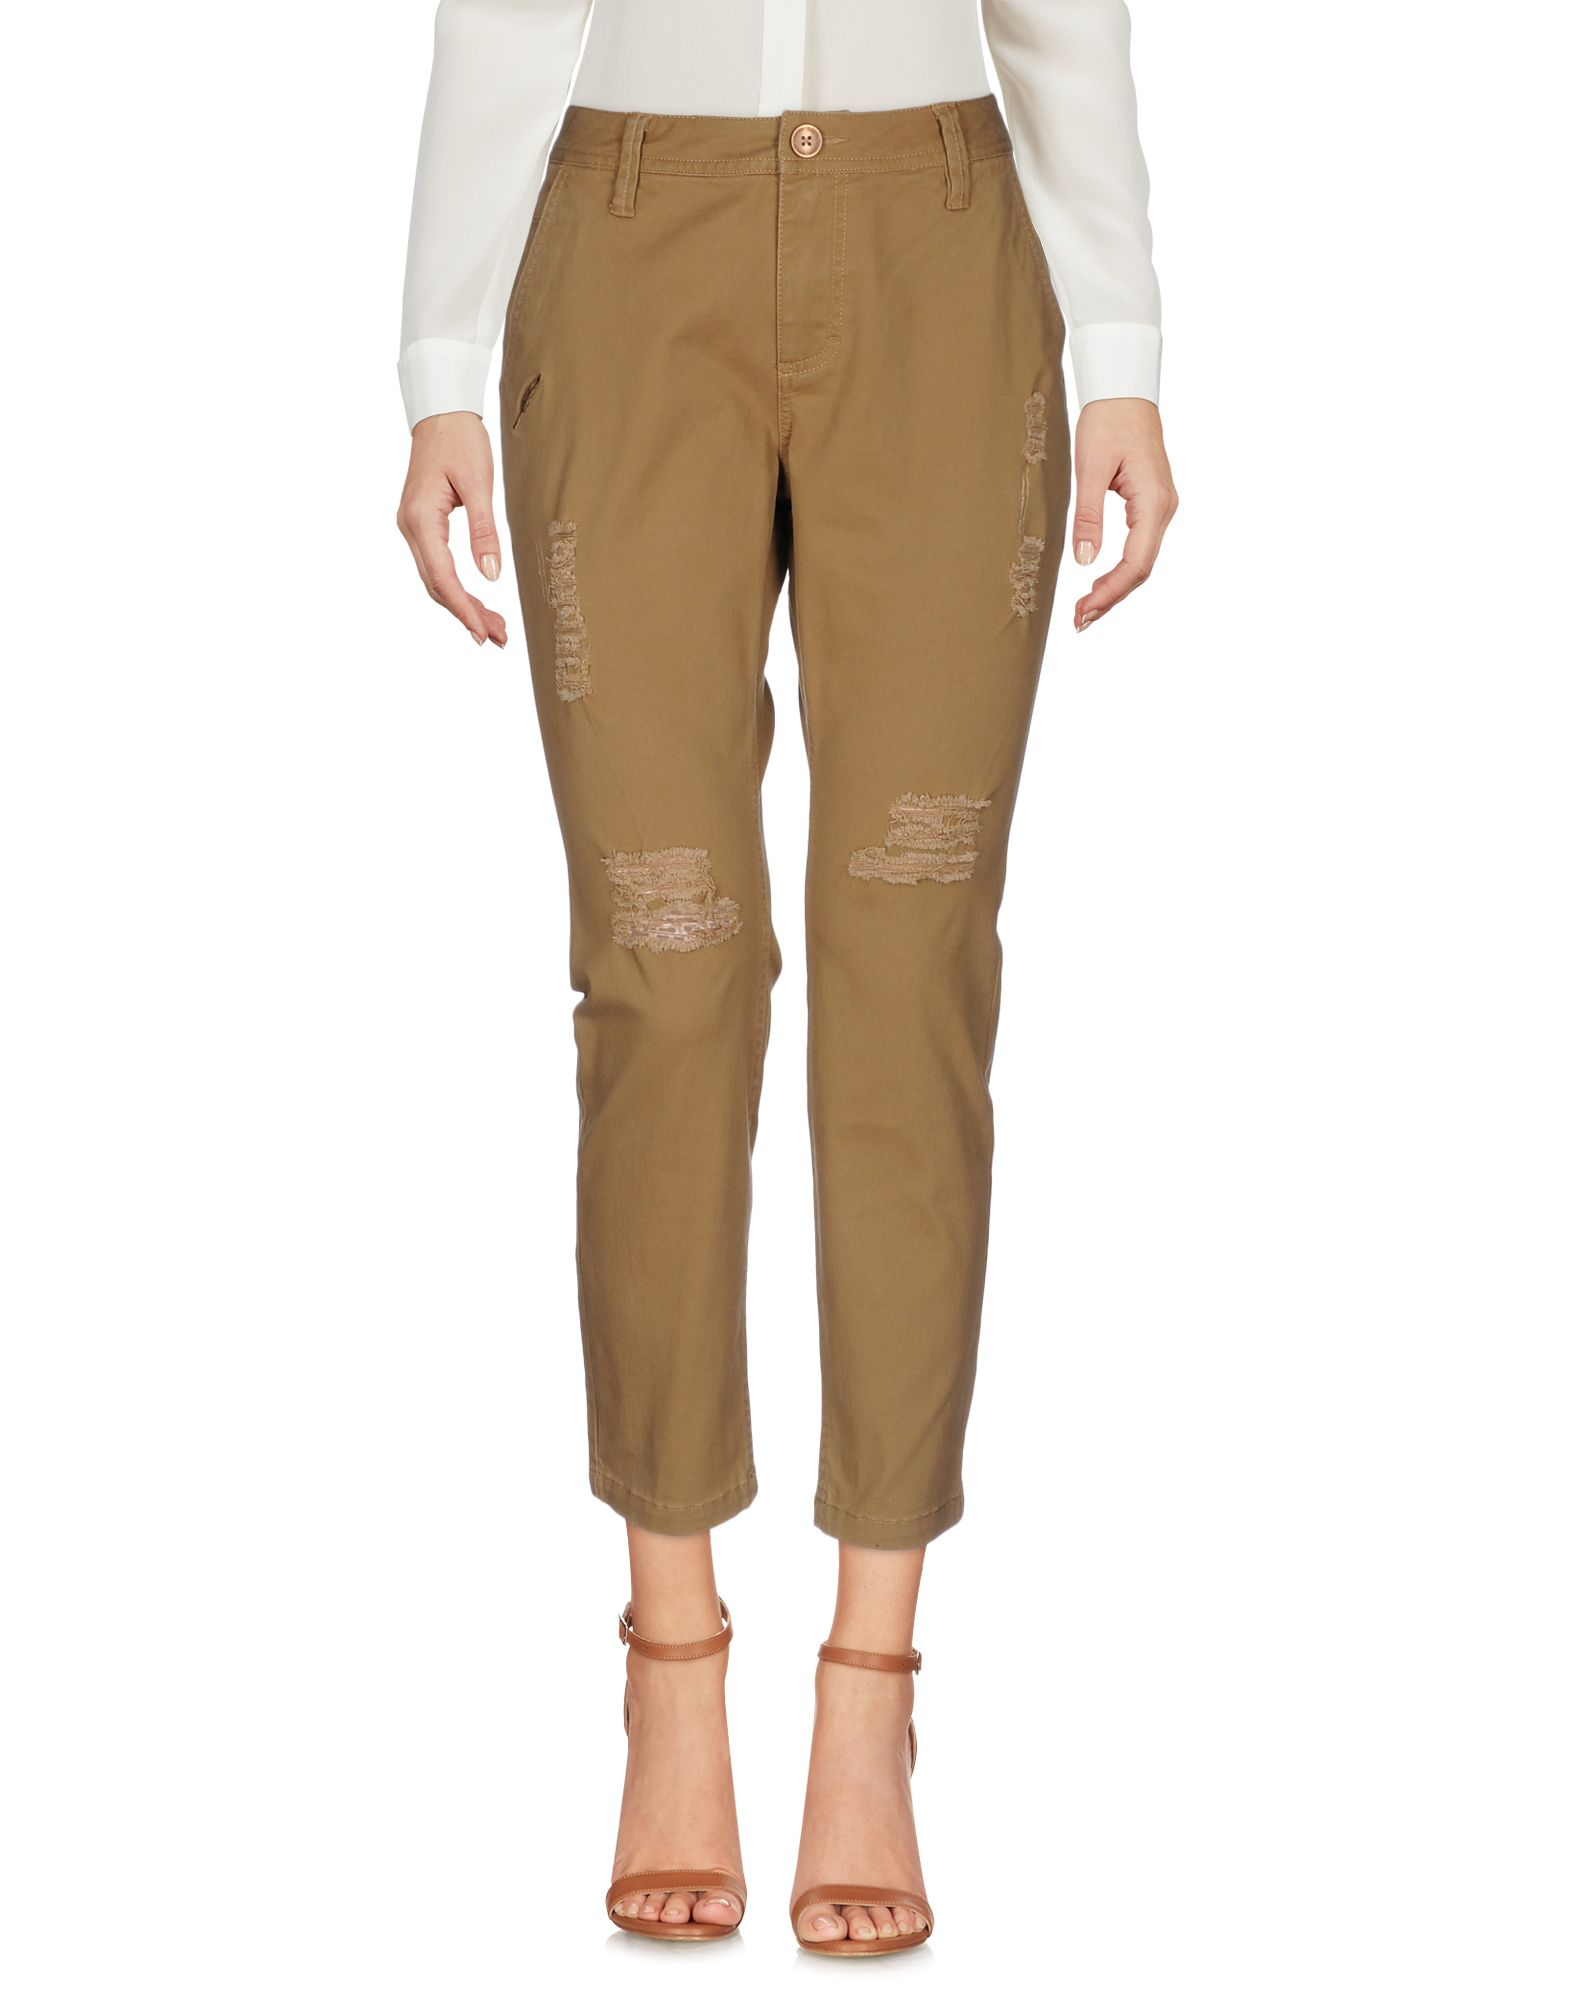 PUBLISH Casual Pants in Beige